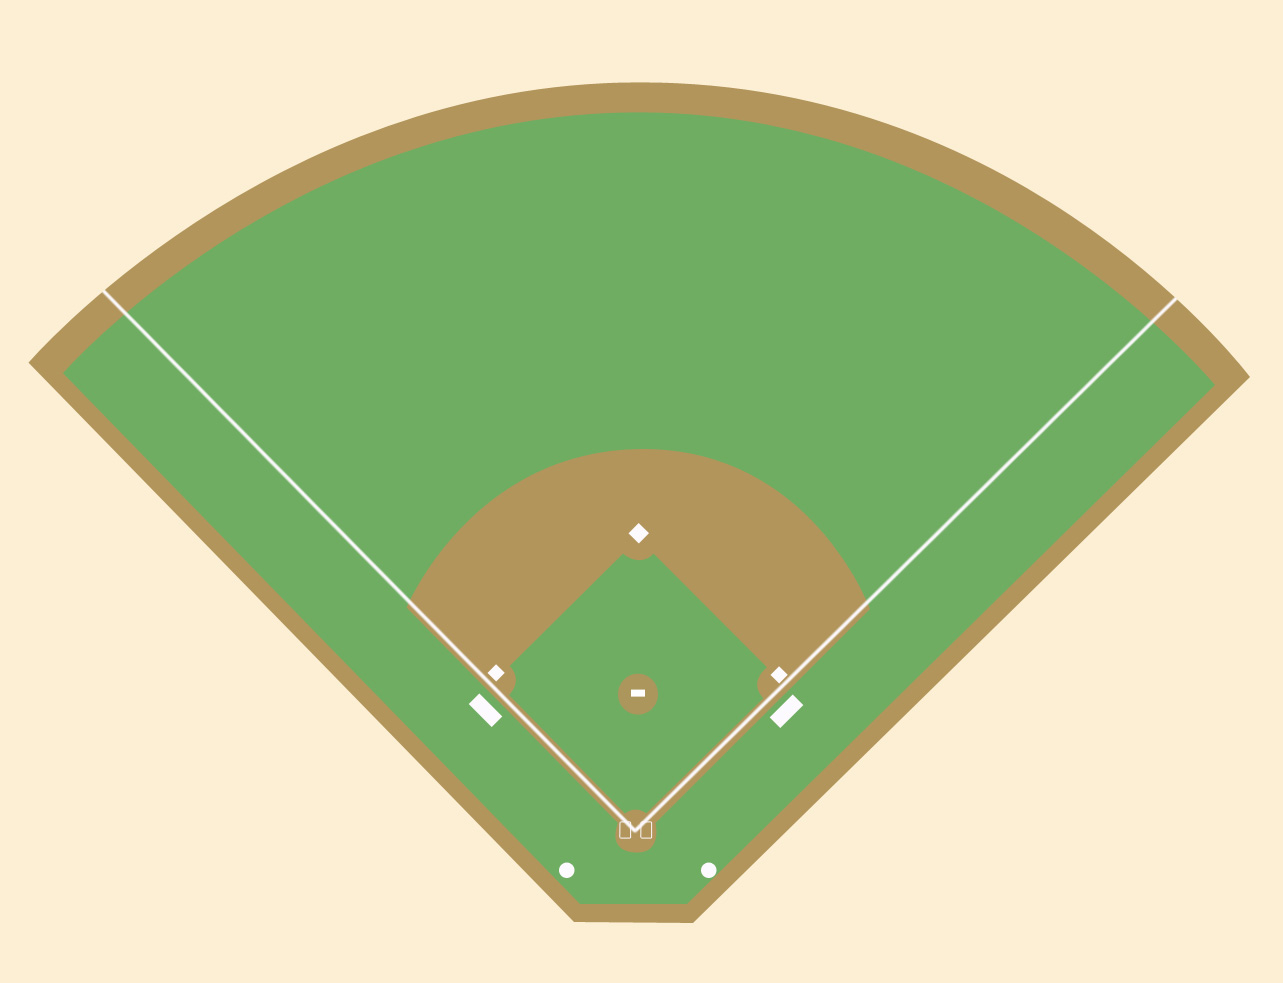 Baseball Field Diagram Huge Collection Of Baseball Field Drawing Download More Than 40